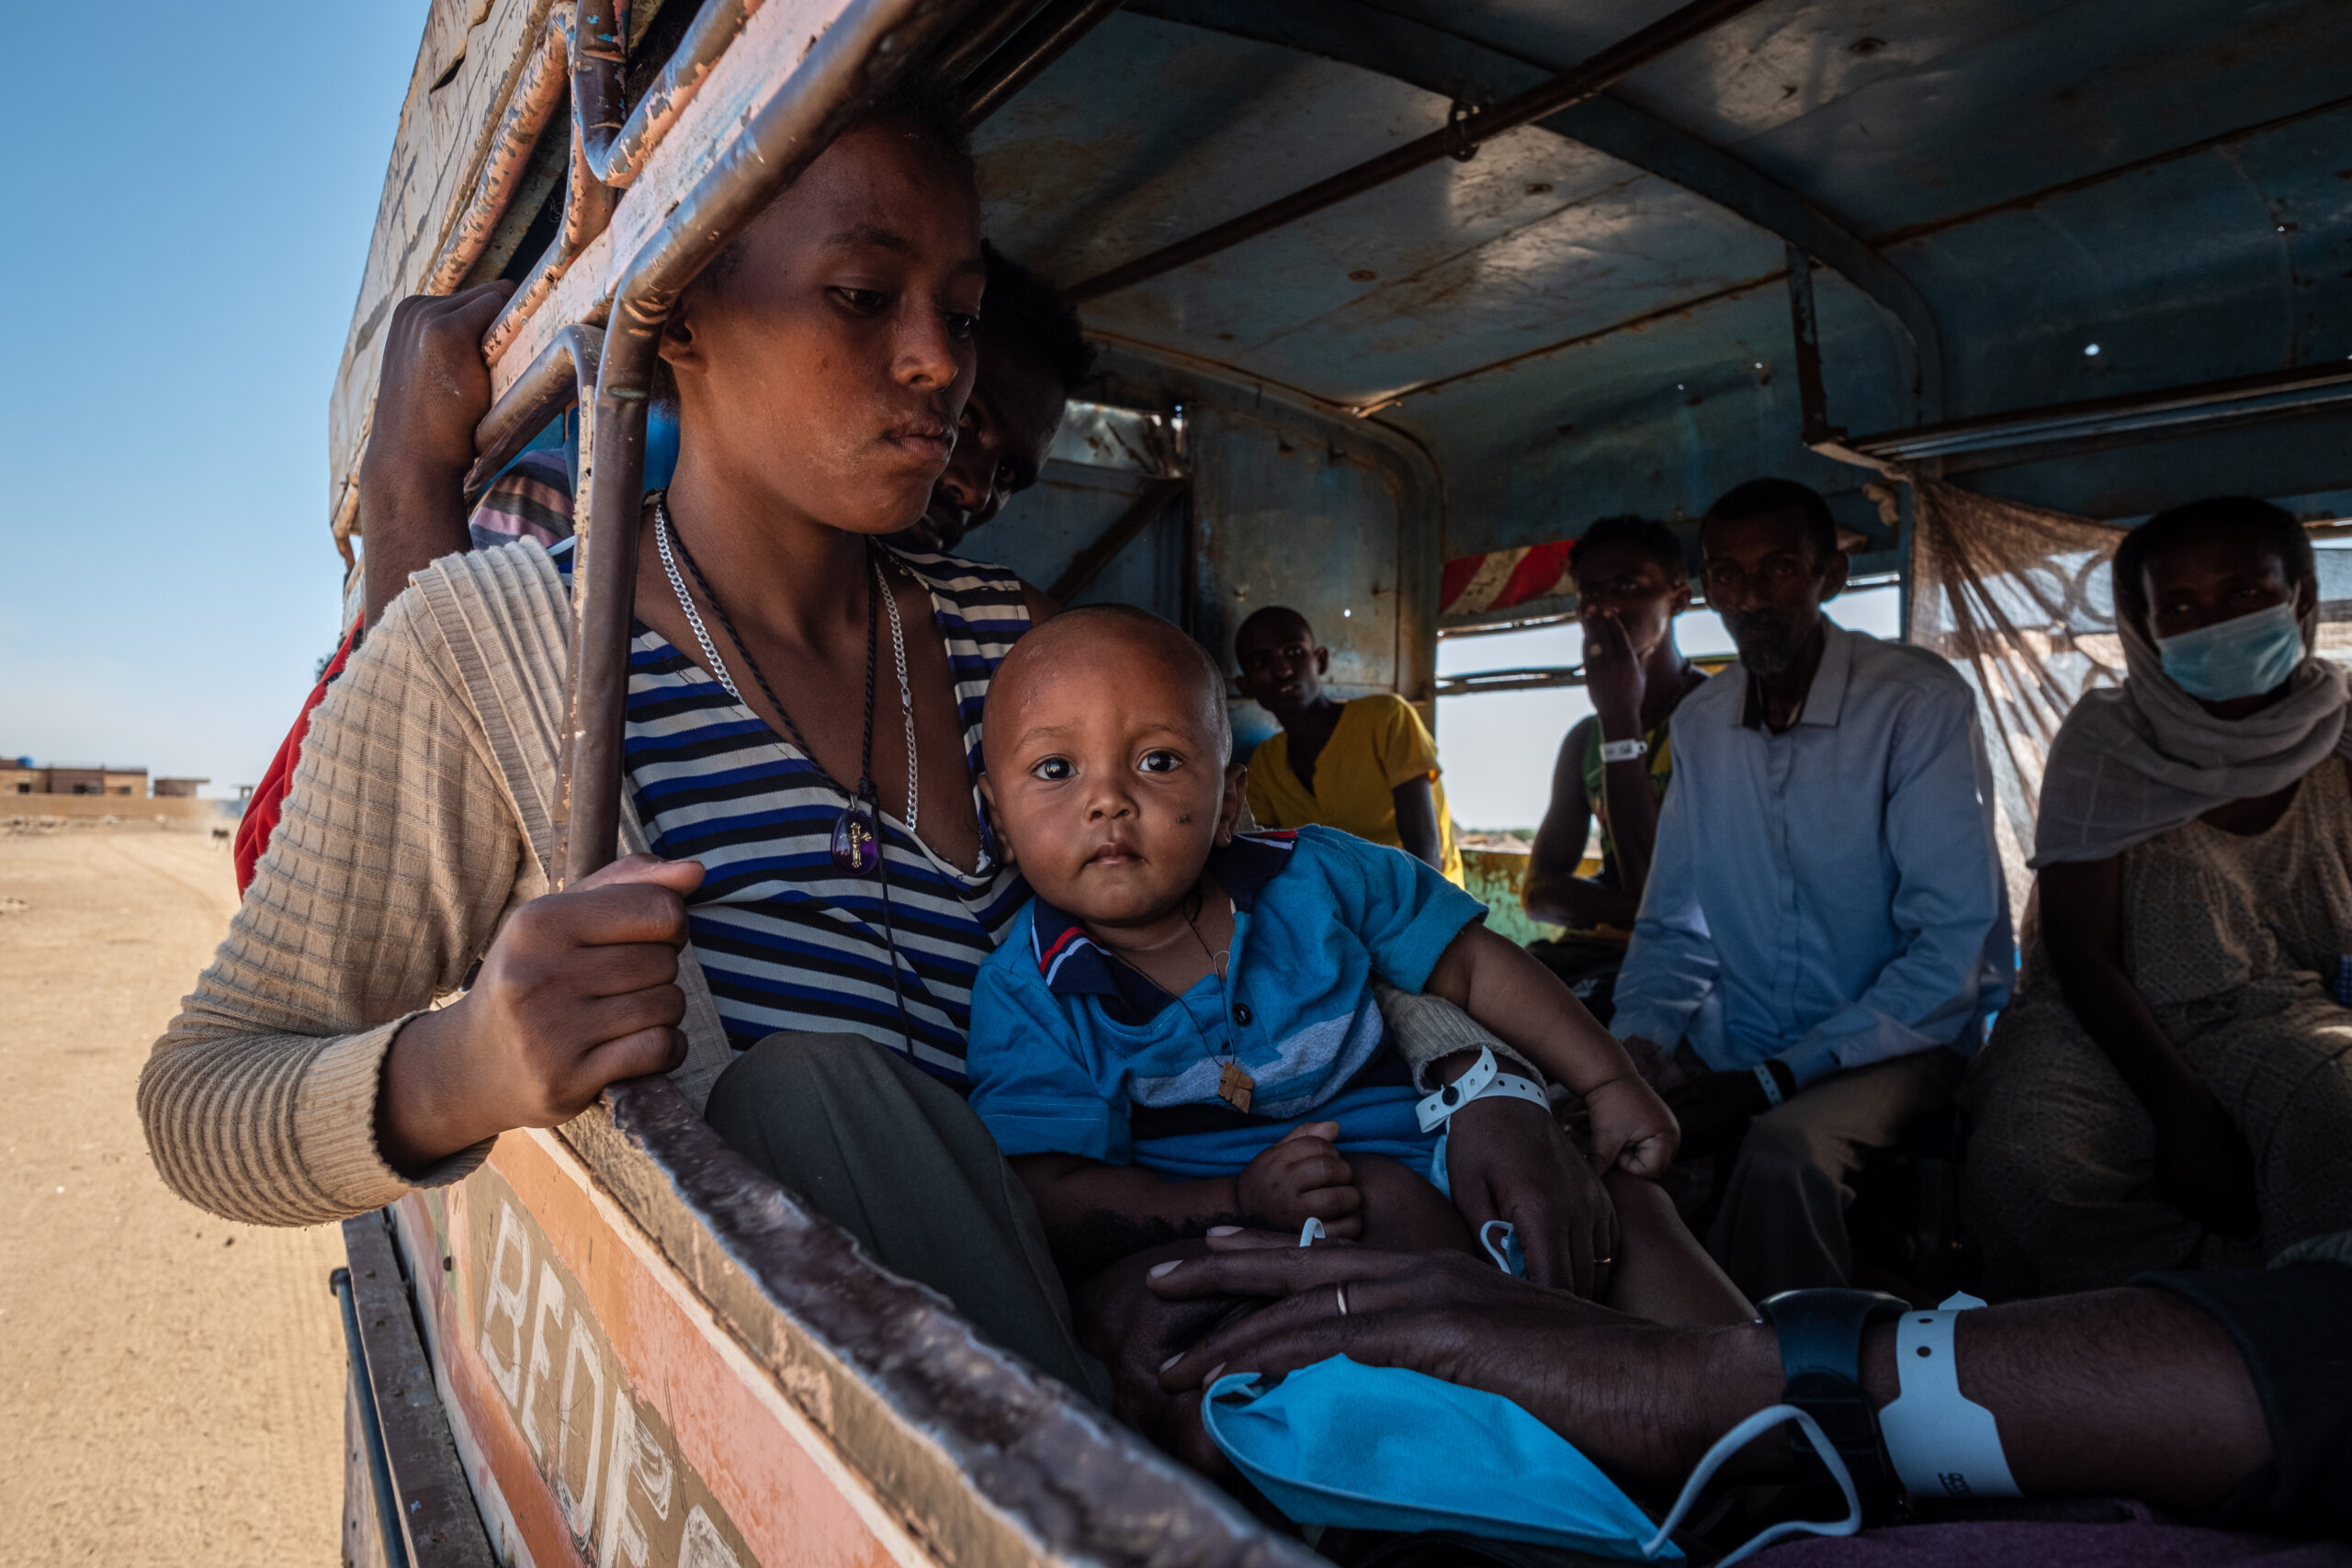 Ethiopian refugees in transit, mother and child in a vehicle. Photo by Joost Bastmeijer.